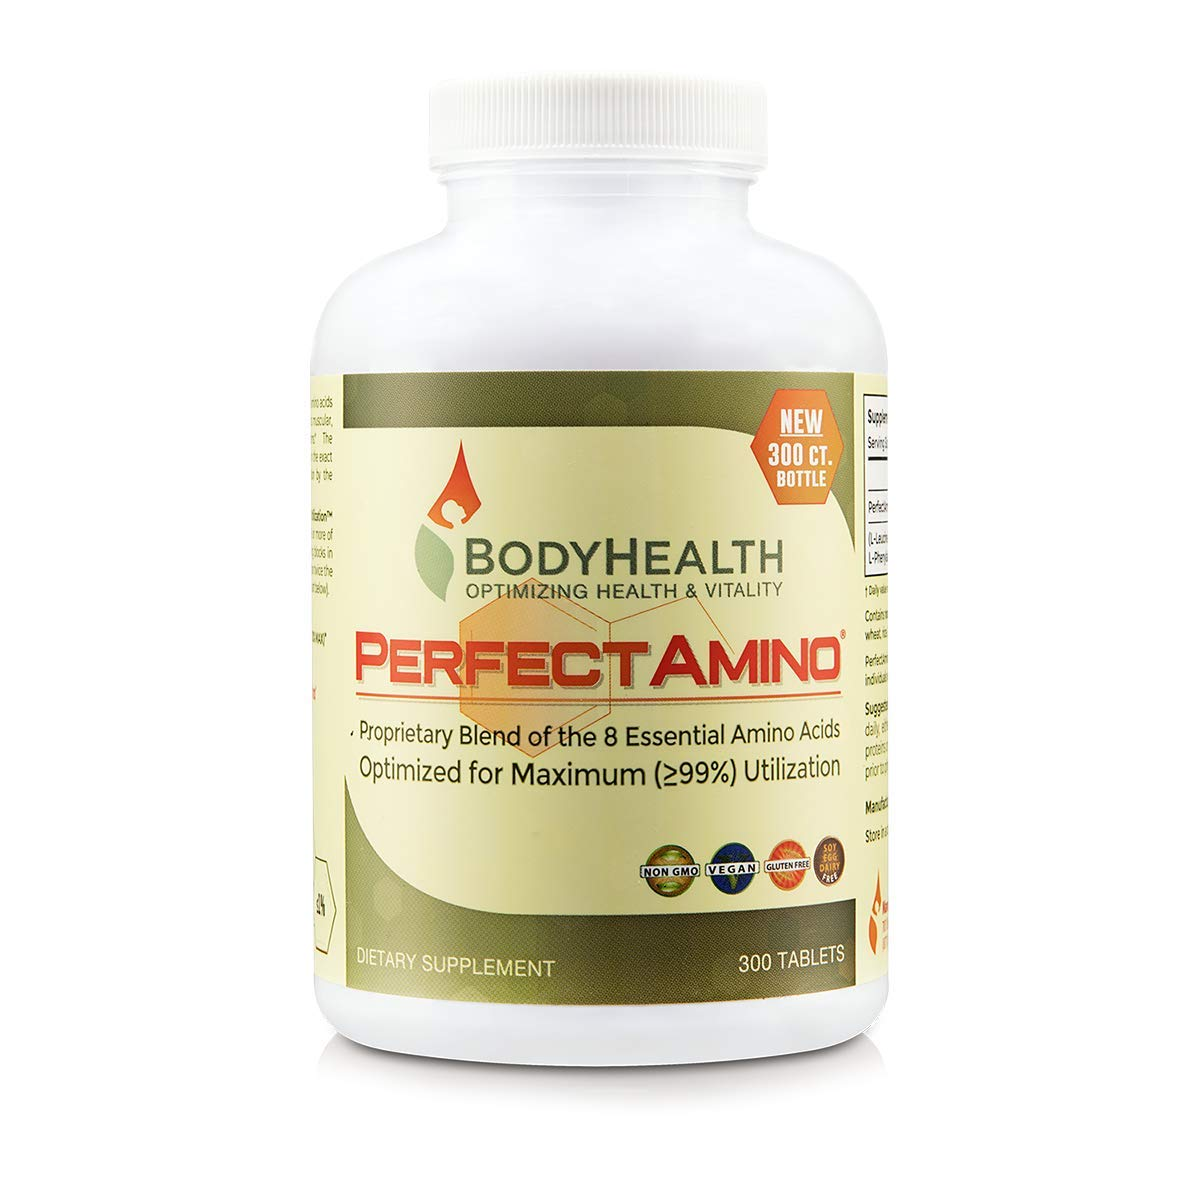 7a7b7c666e316 BodyHealth PerfectAmino (300 Tablets) 8 Essential Amino Acids Supplements  with BCAA